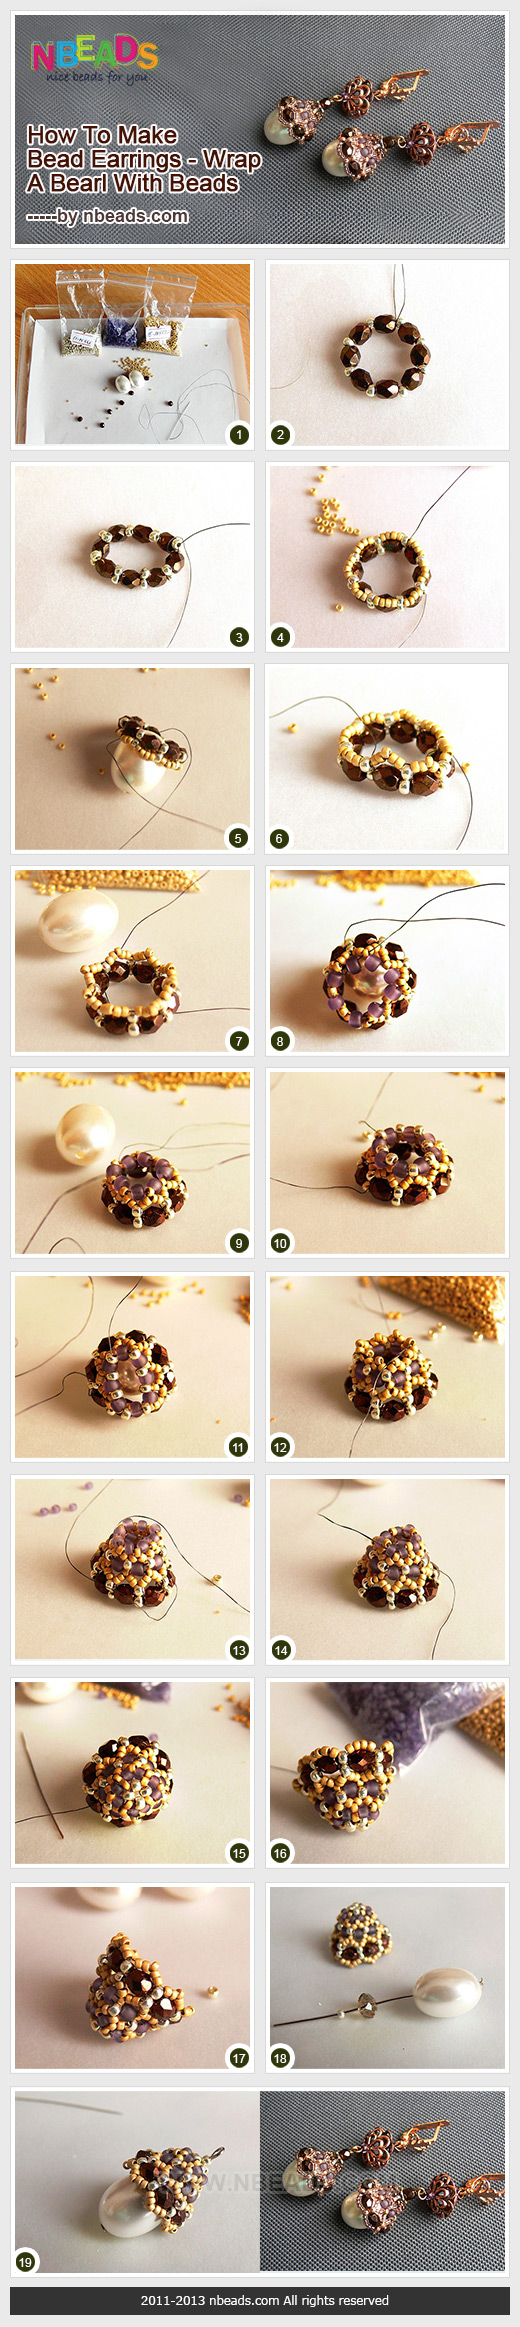 how to make bead earrings - wrap a pearl with beads